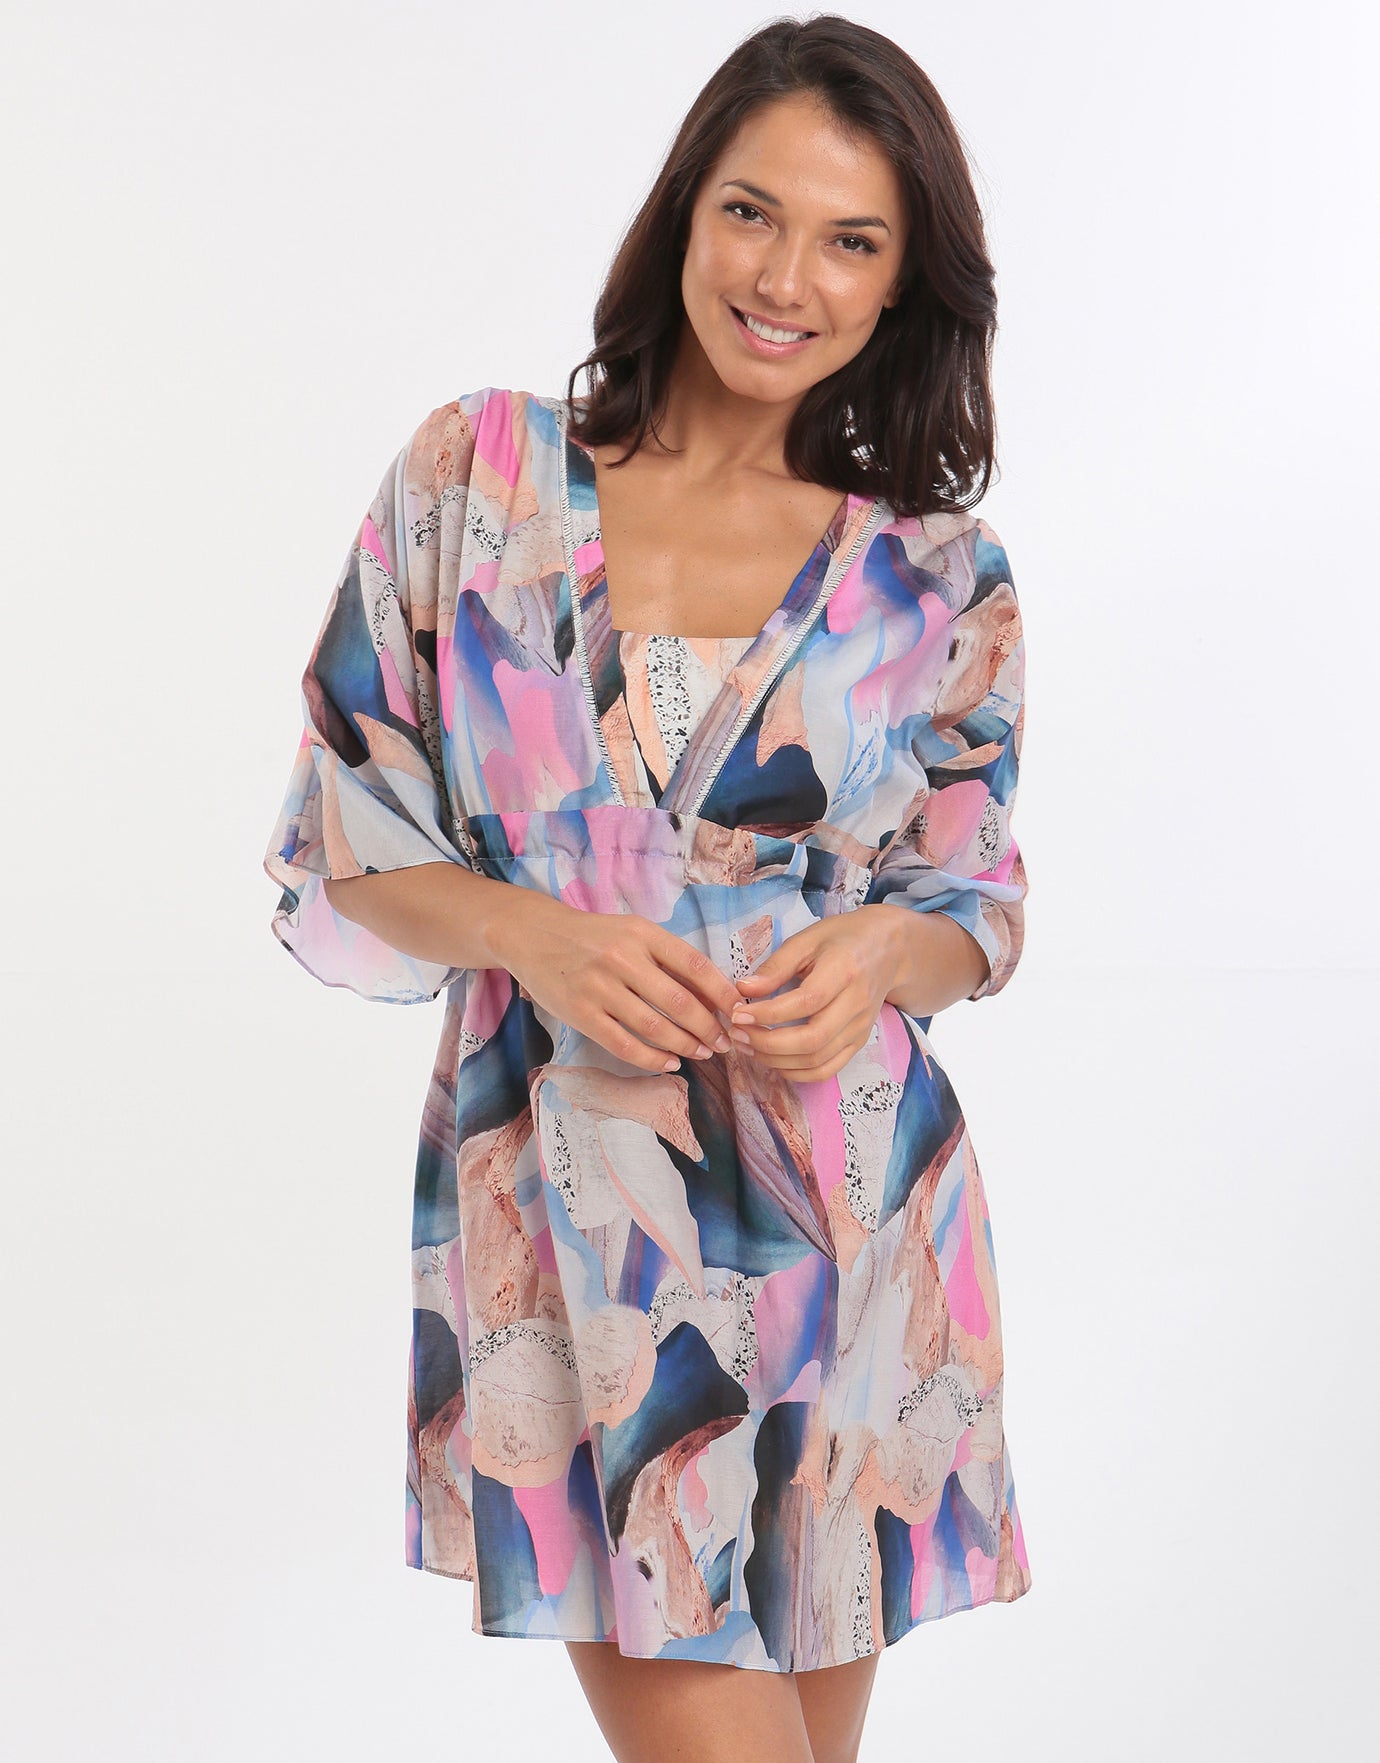 Gottex Dusk to Dawn Beach Dress - Multi